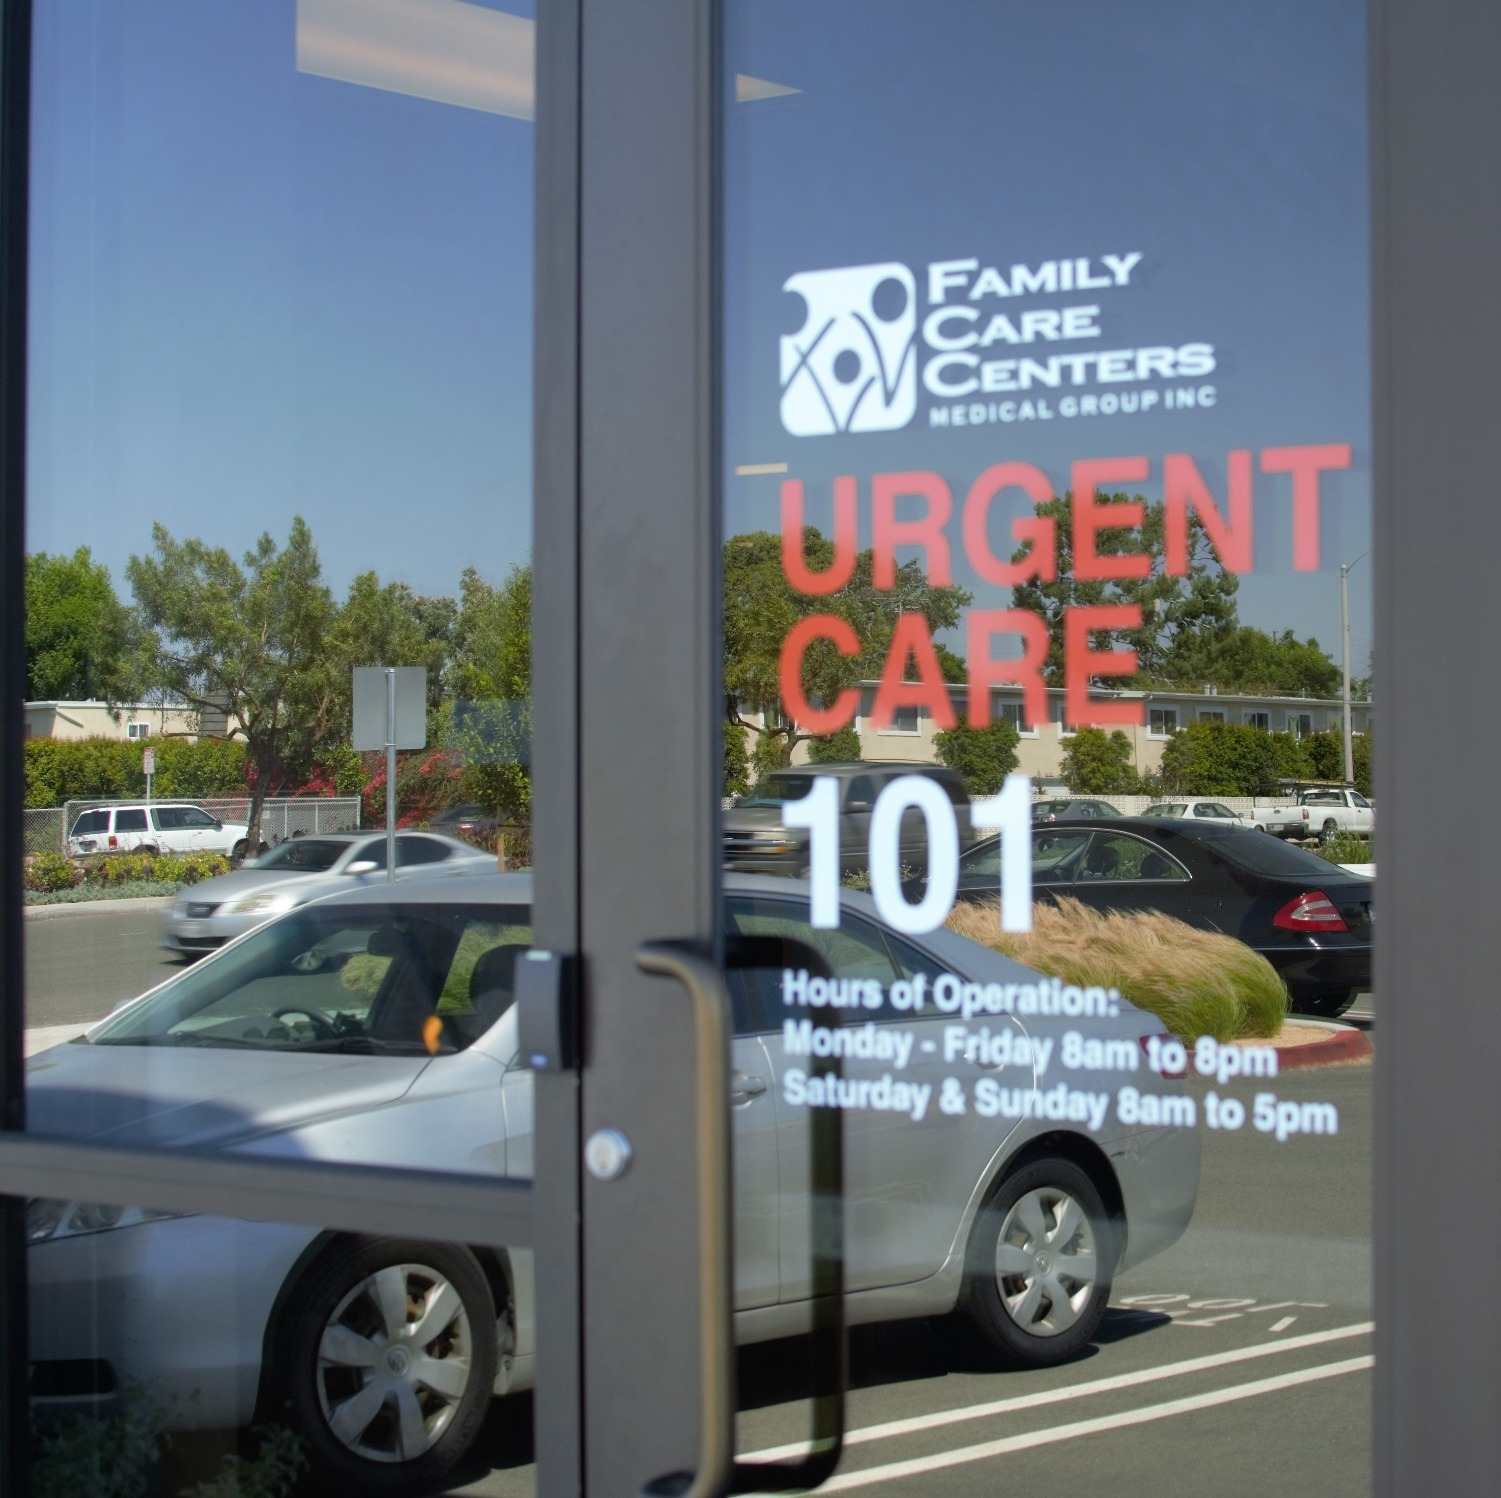 Fountain Valley Urgent Care image 3